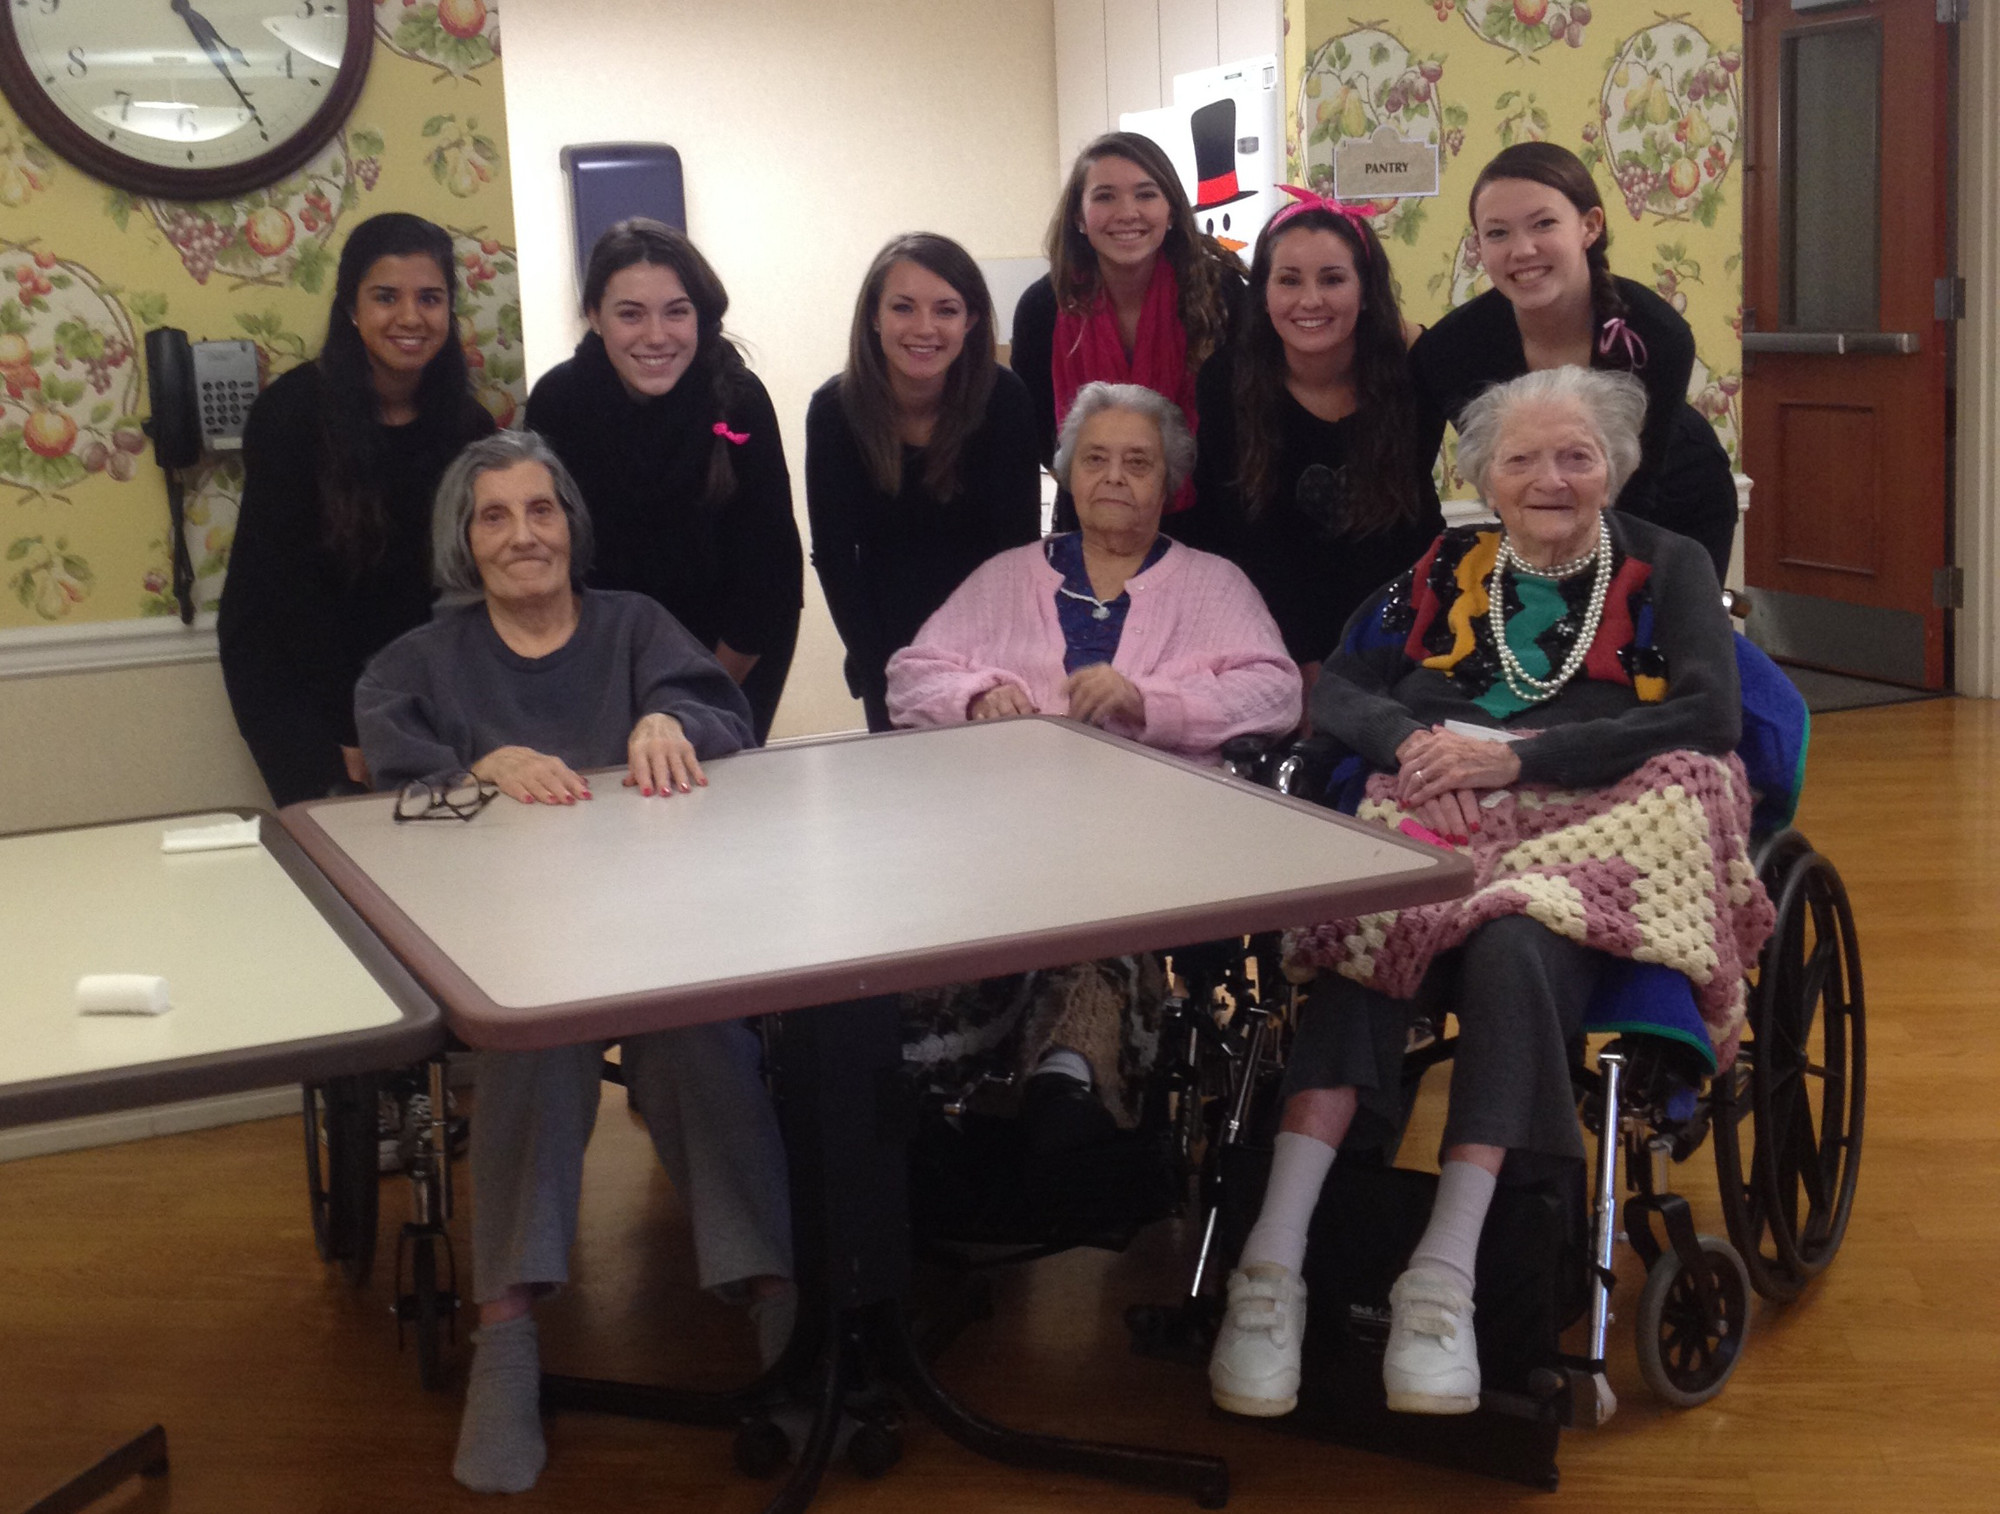 Calhoun Glamour Gals members, from left, Jackie Chin, Alison McCutchan, Sarah Protan, Cameron Morales, Sarah Sandler and Claire Murphy visited with seniors at the Belair Nursing Home in North Bellmore in January.